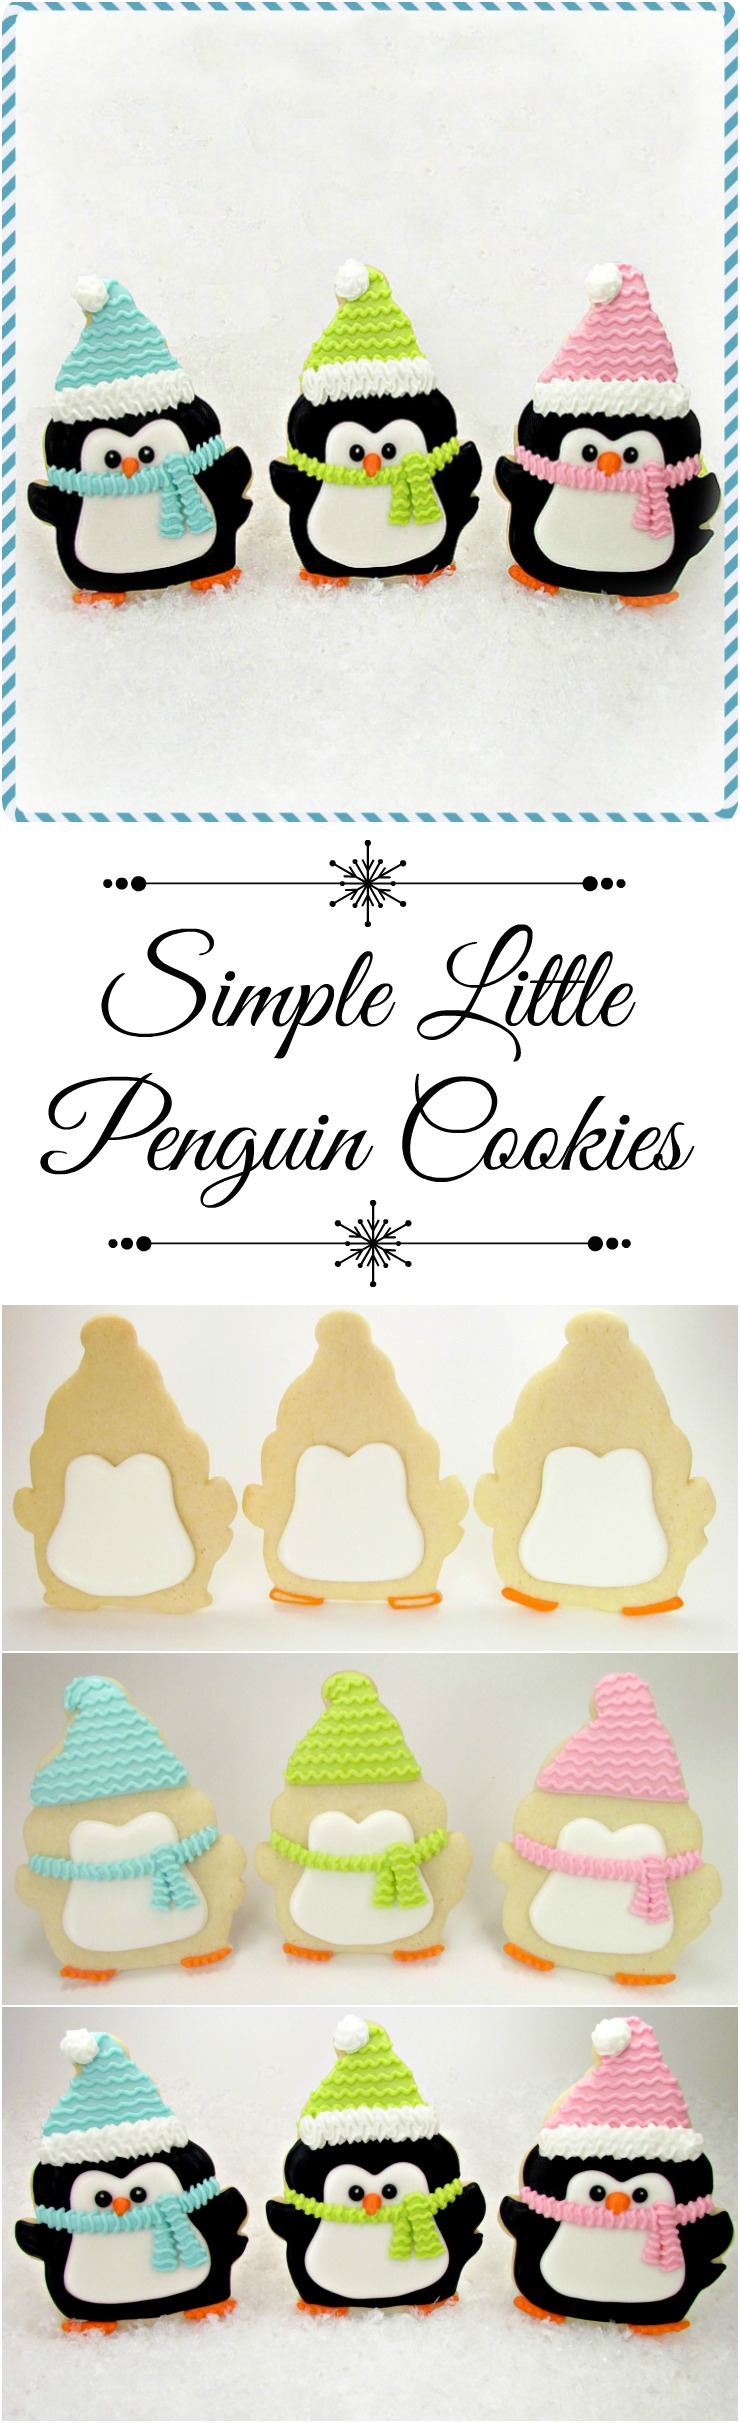 Simple Little Penguin Cookies | The Bearfoot Baker